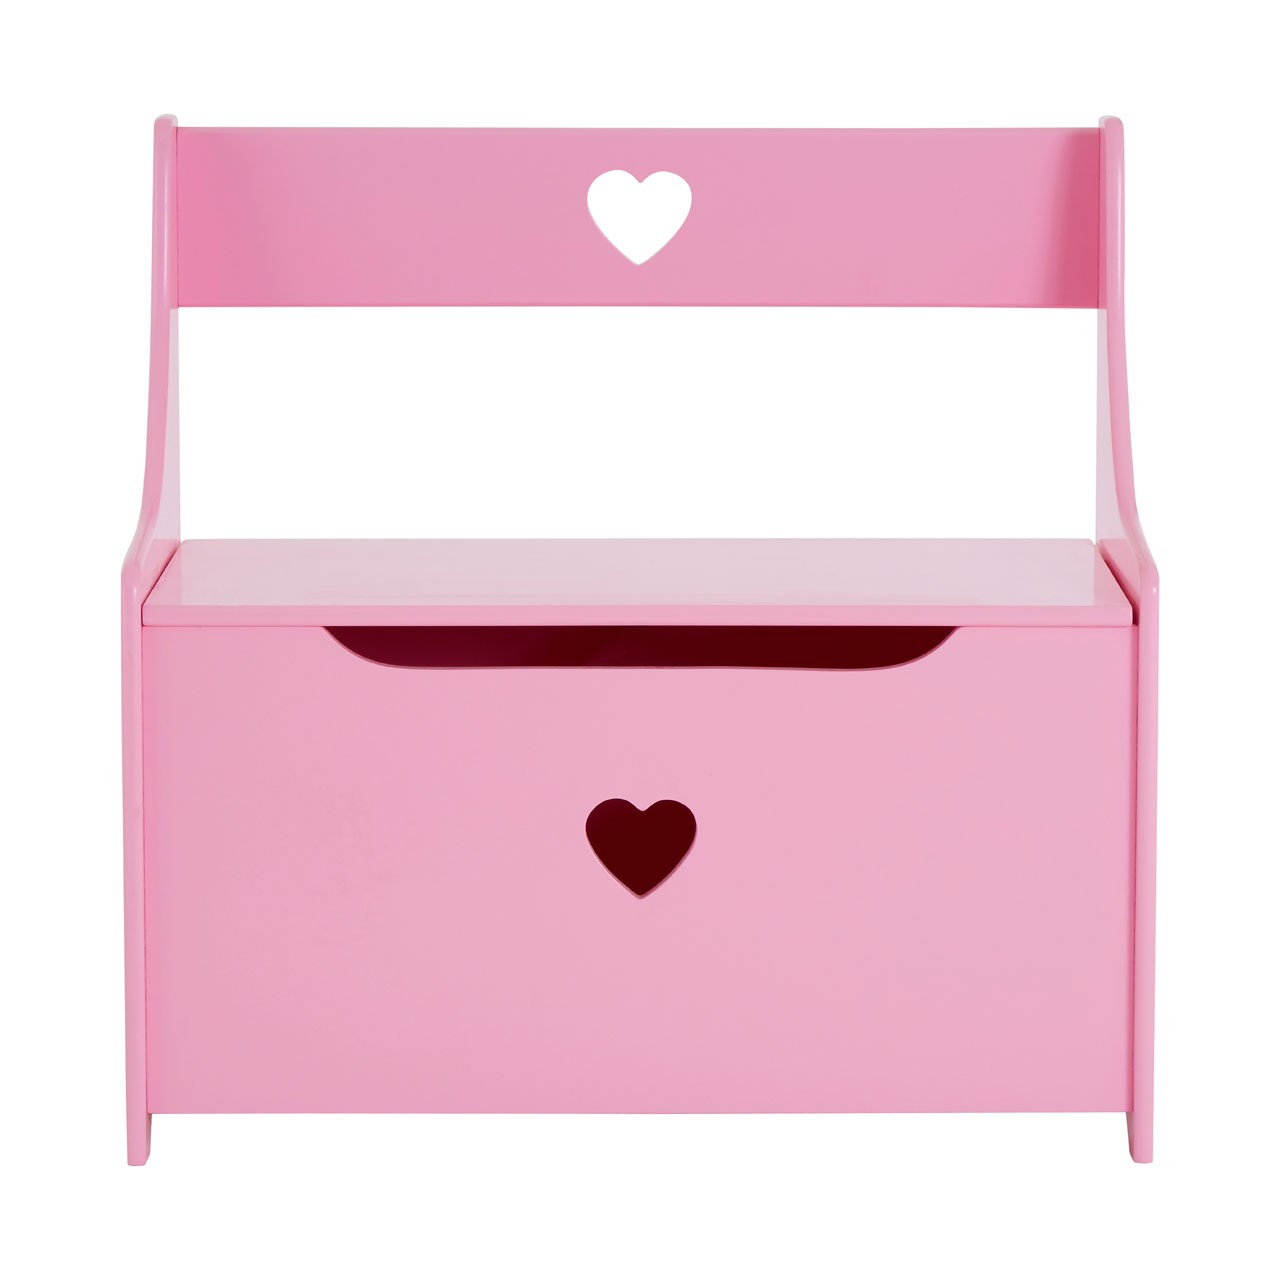 Prime Furnishing Heart Design Kids Storage Box, MDF - Pink